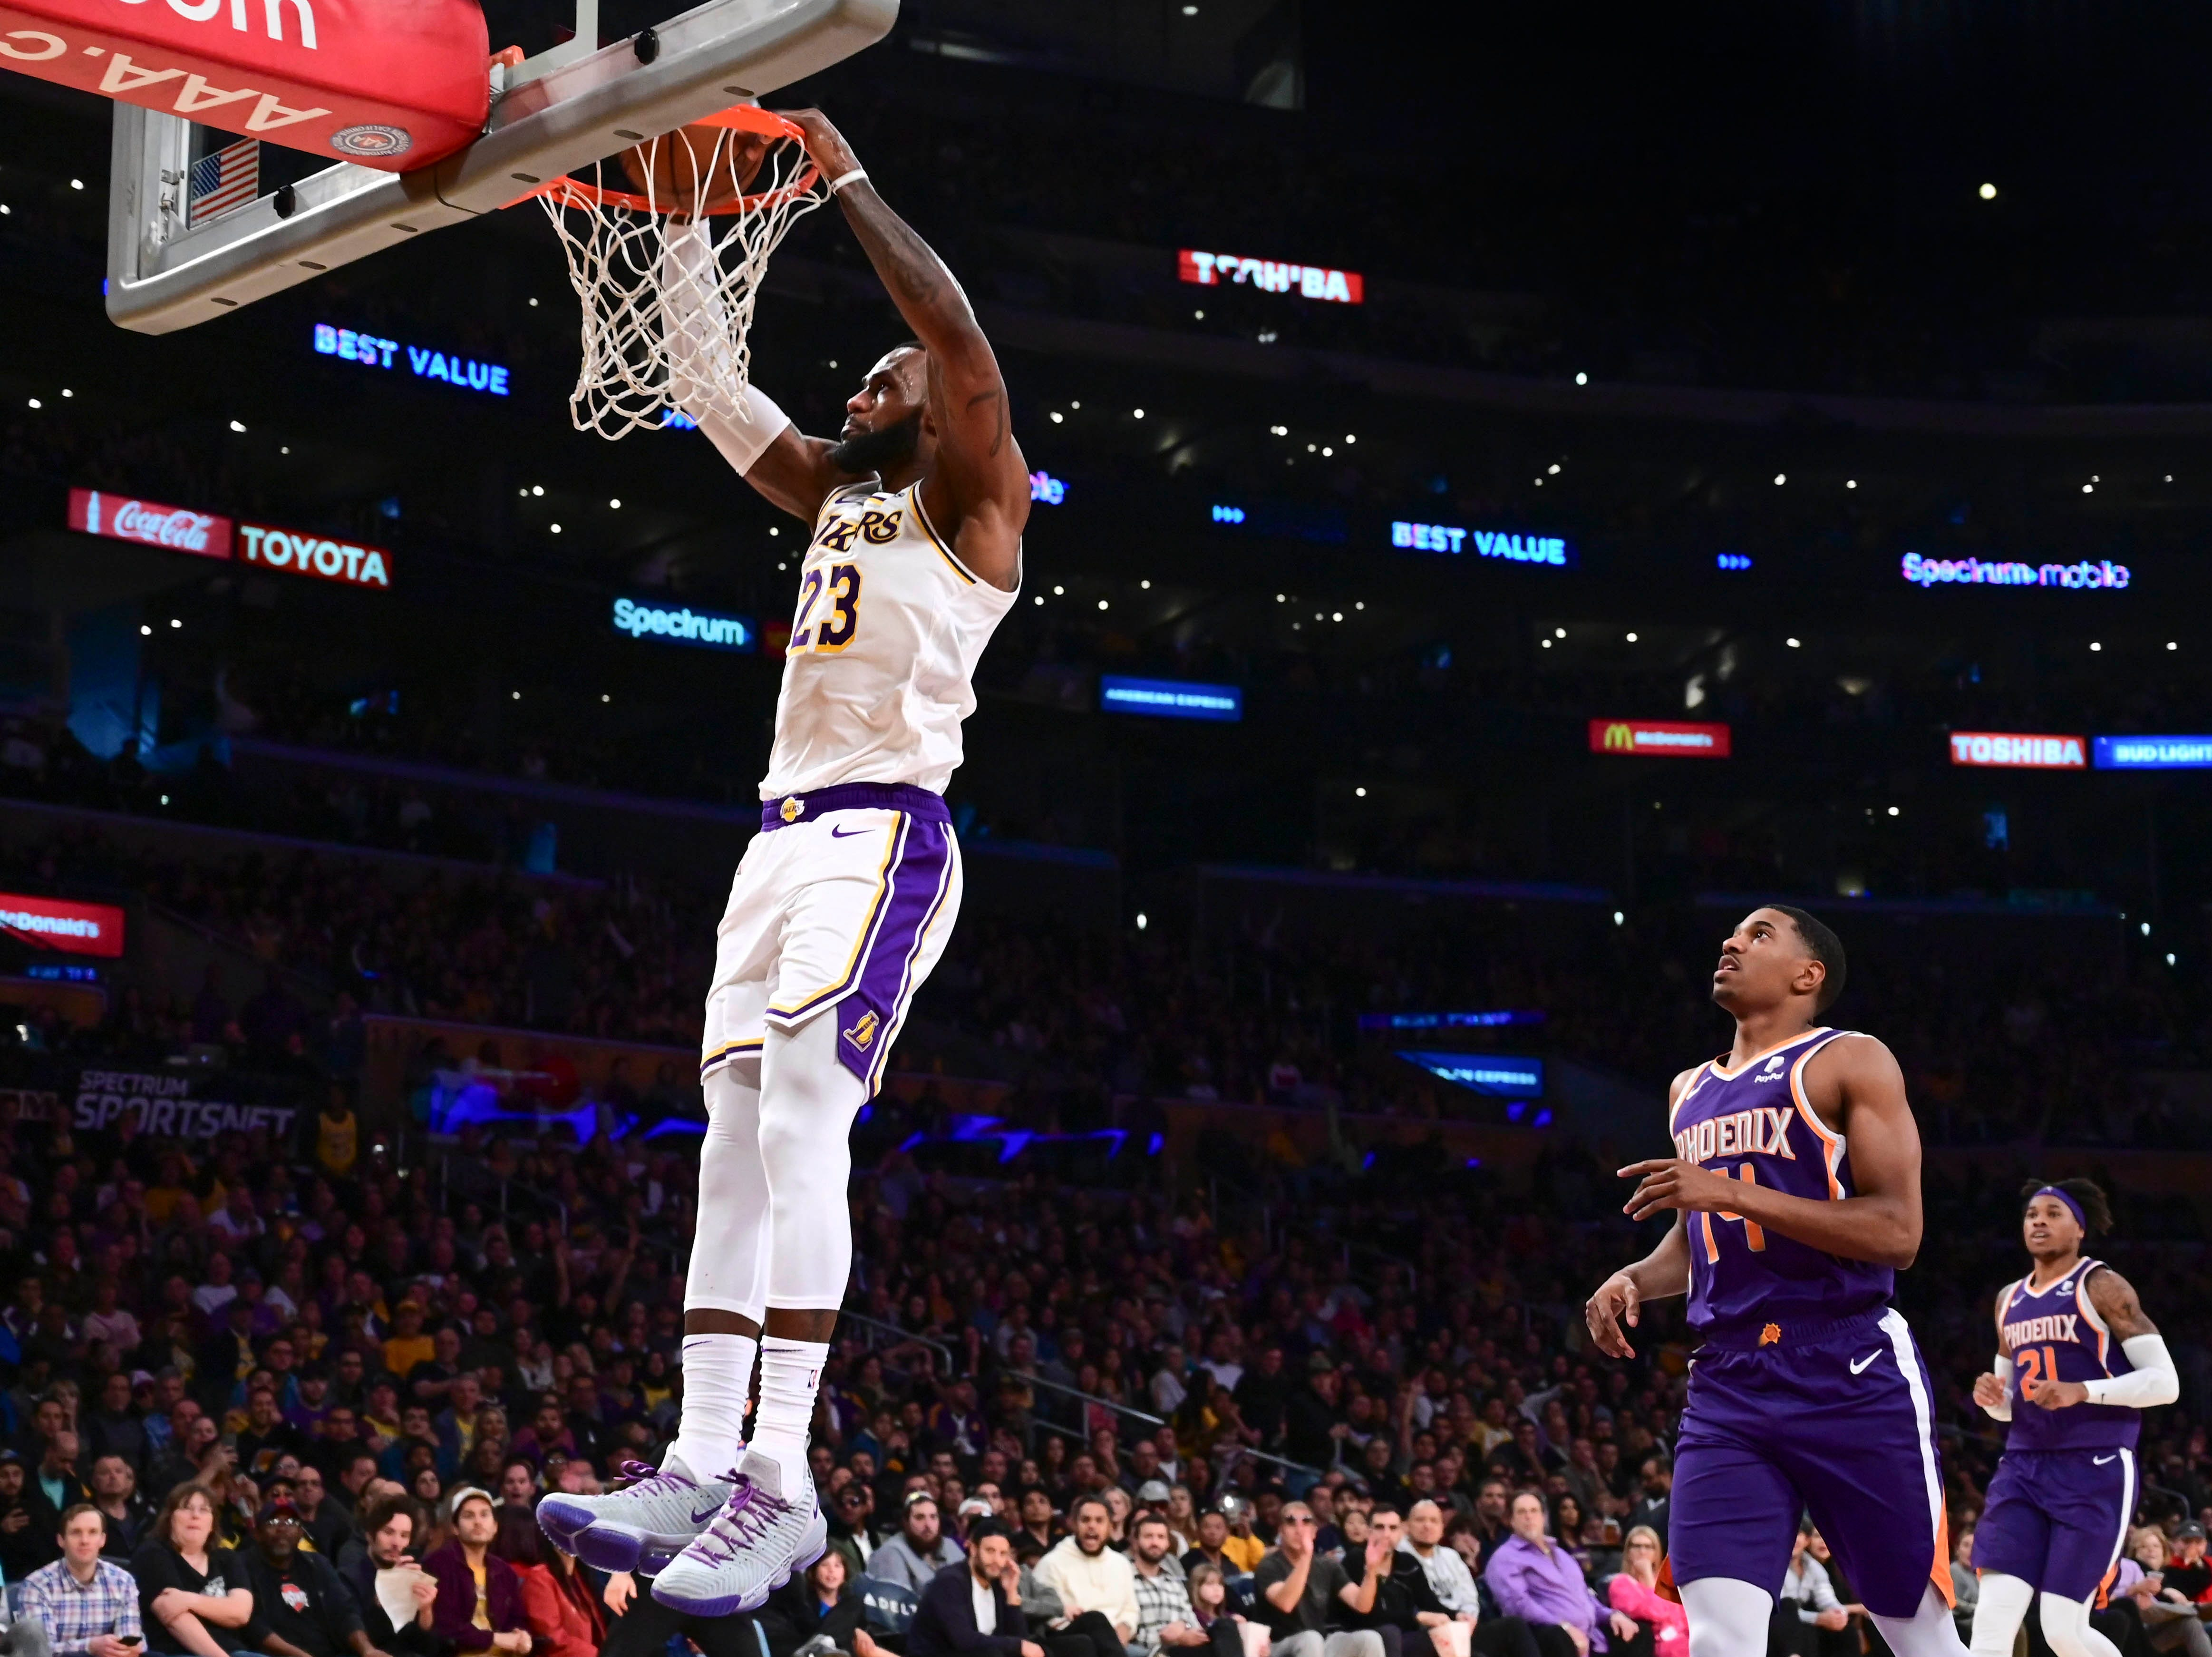 Dec. 2: Los Angeles Lakers forward LeBron James dunks in the third quarter against the Phoenix Suns at Staples Center.